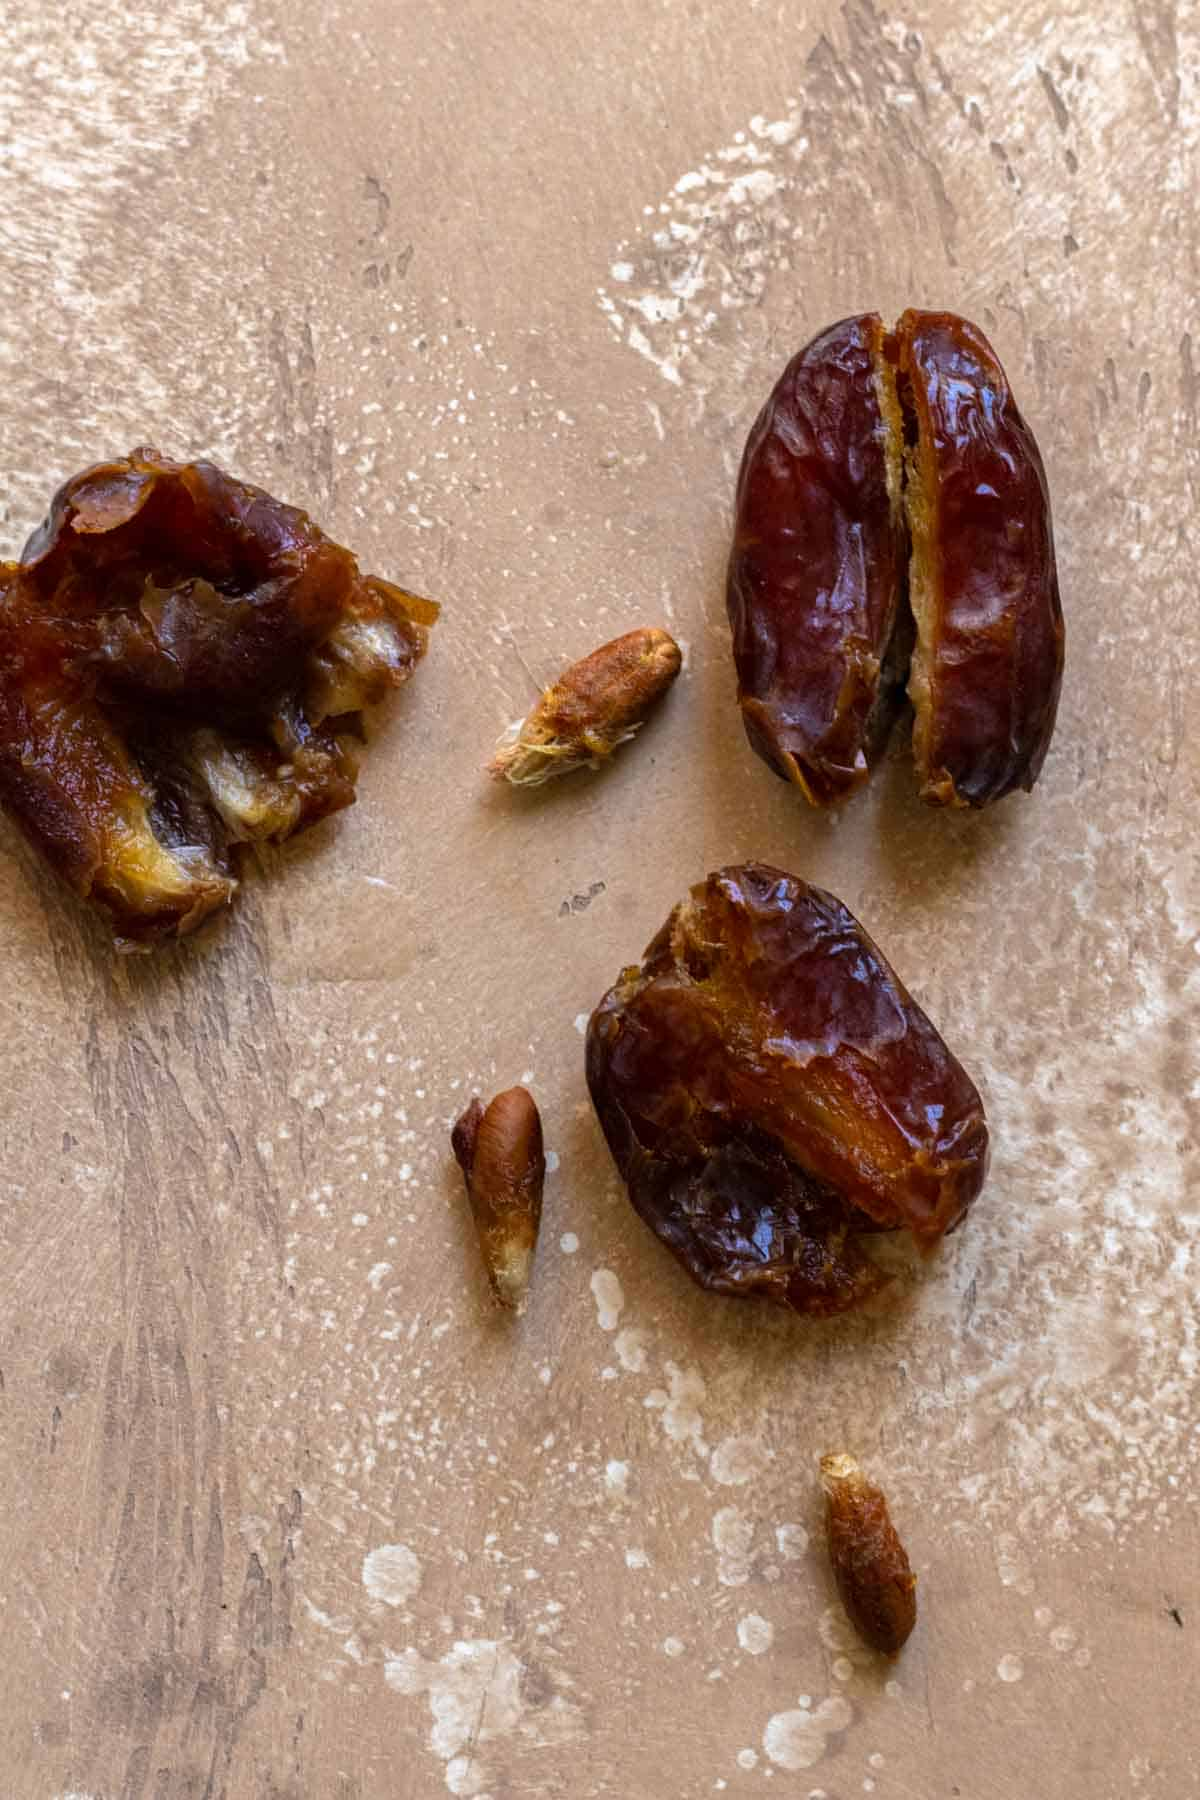 3 medjool dates split down the middle with their pits removed.